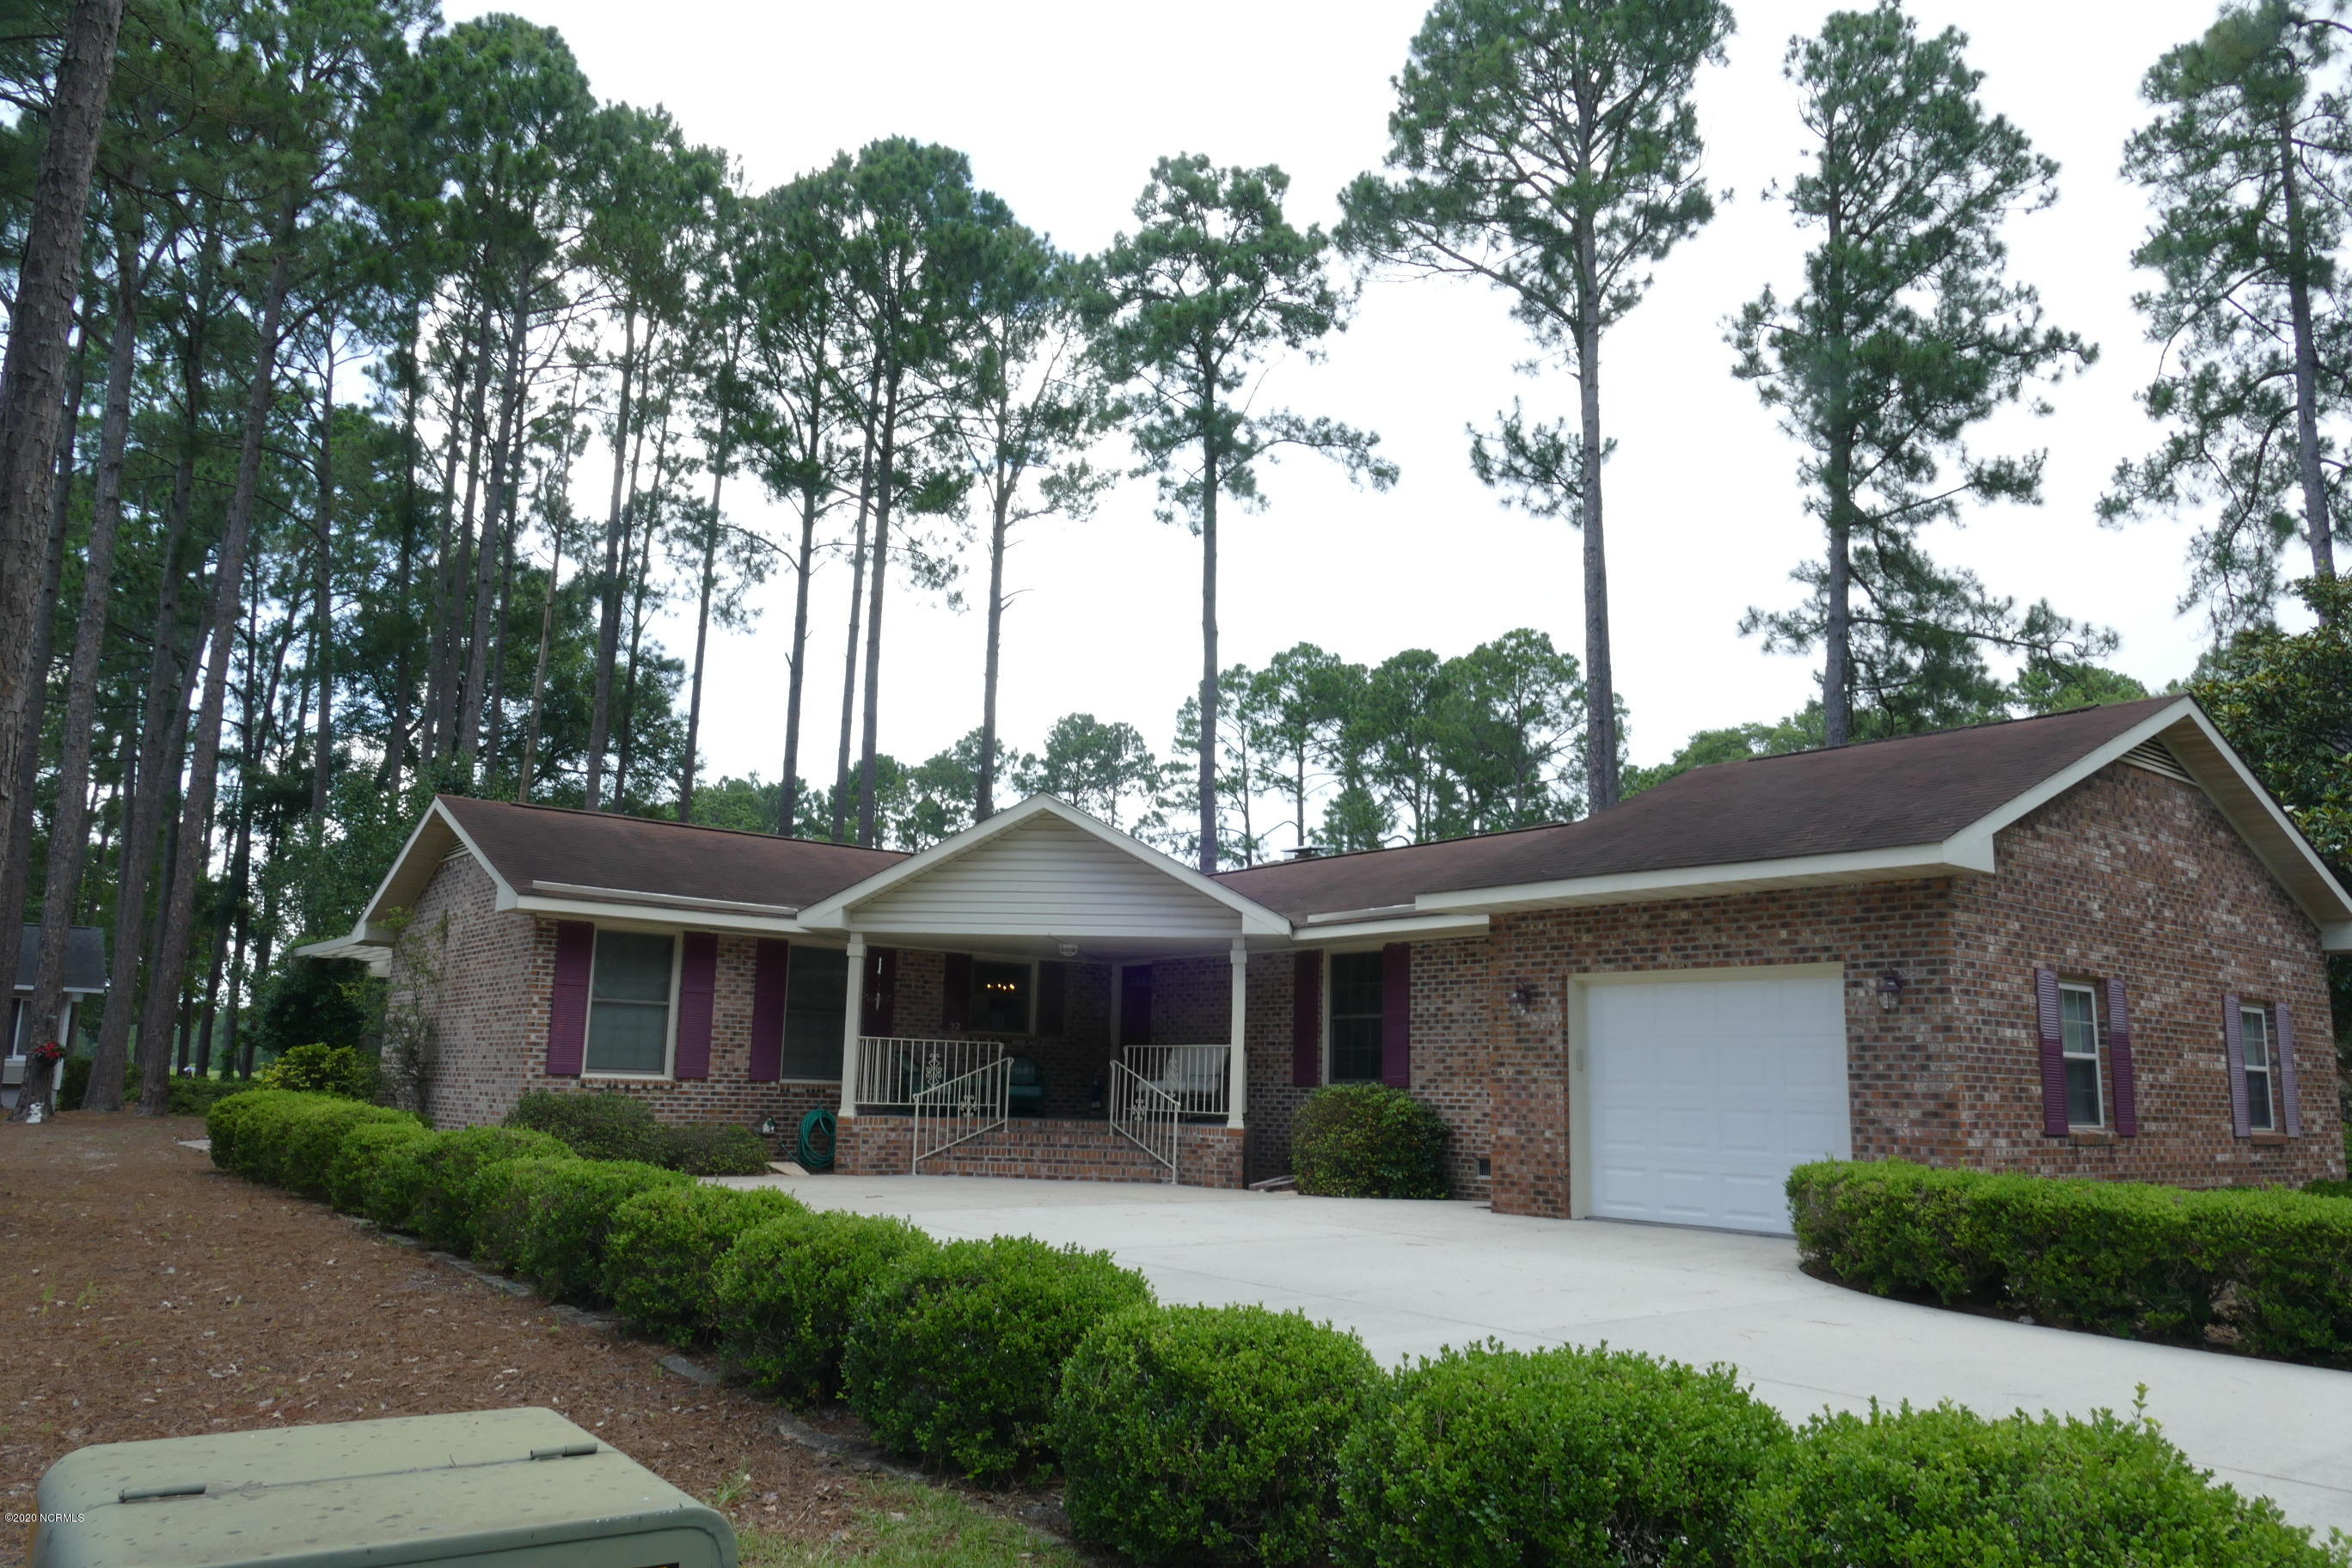 52 Carolina Shores Drive Carolina Shores, NC 28467